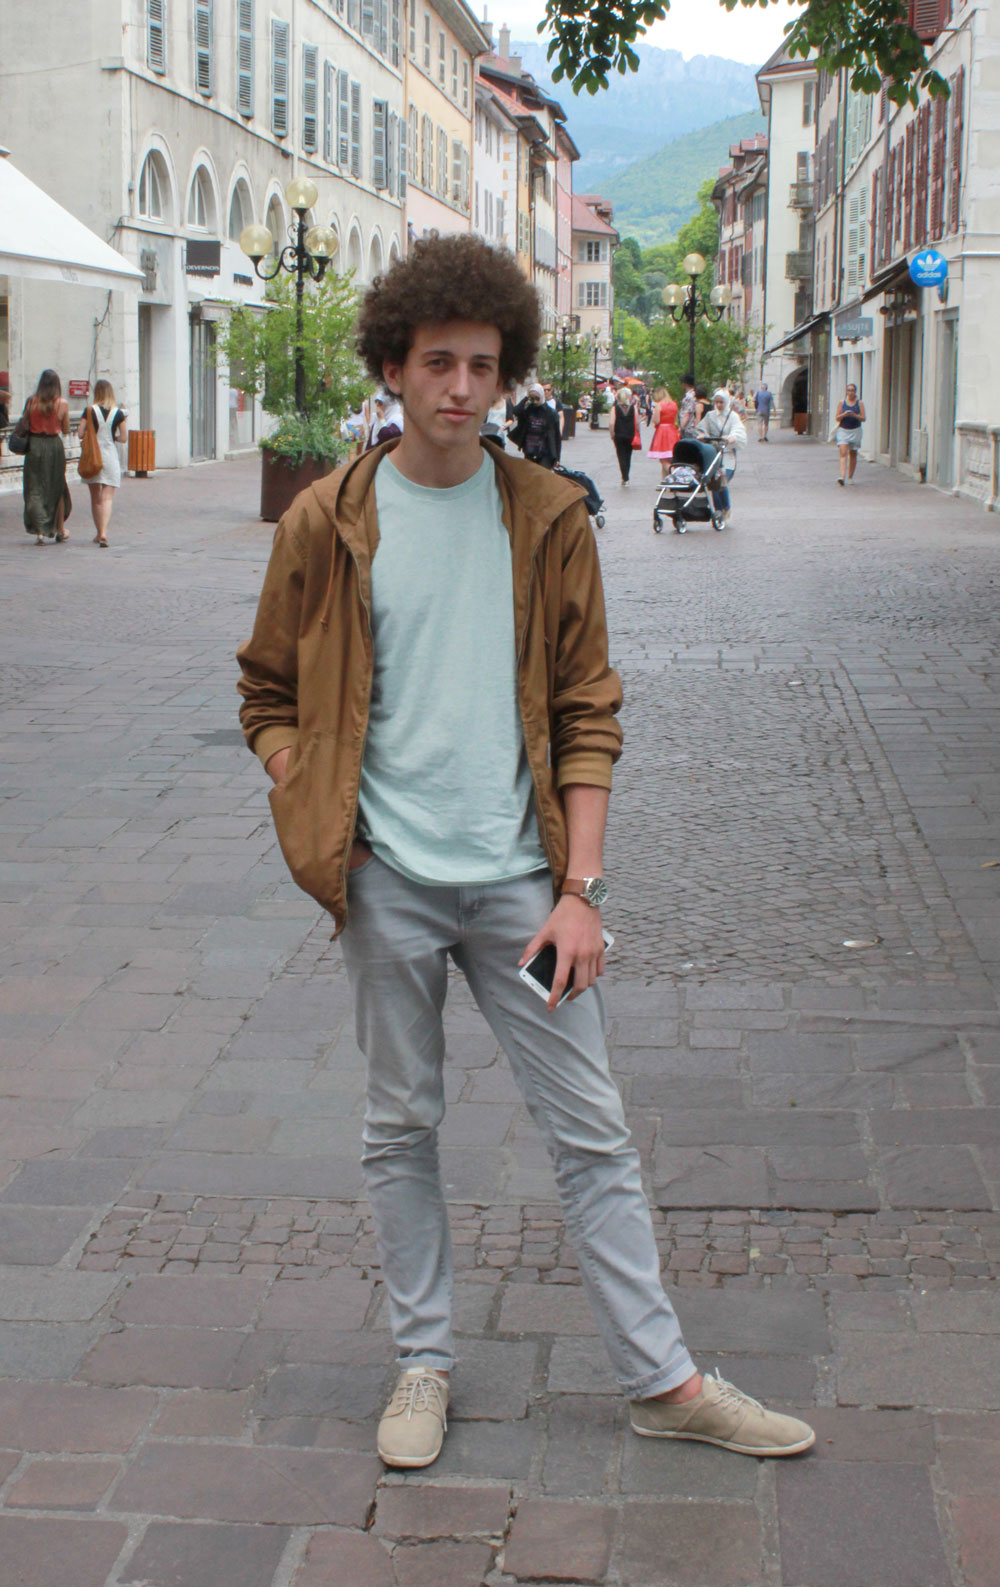 Homme afro couleurs pastel annecy france